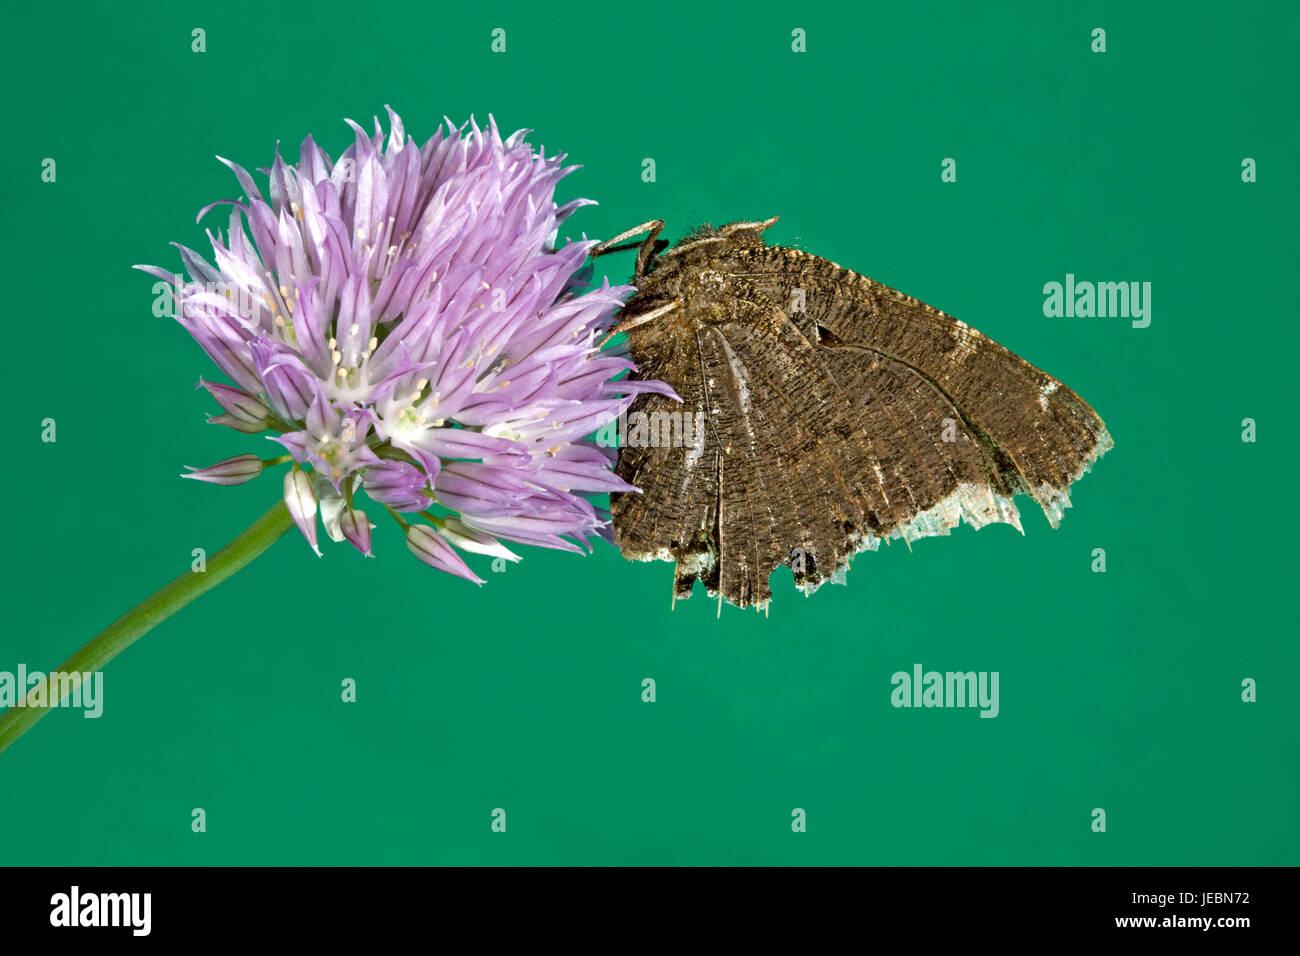 A mourning cloak butterfly, Nymphalis antiopa, playing dead with antenna hidden between its wings, on wild clover. - Stock Image